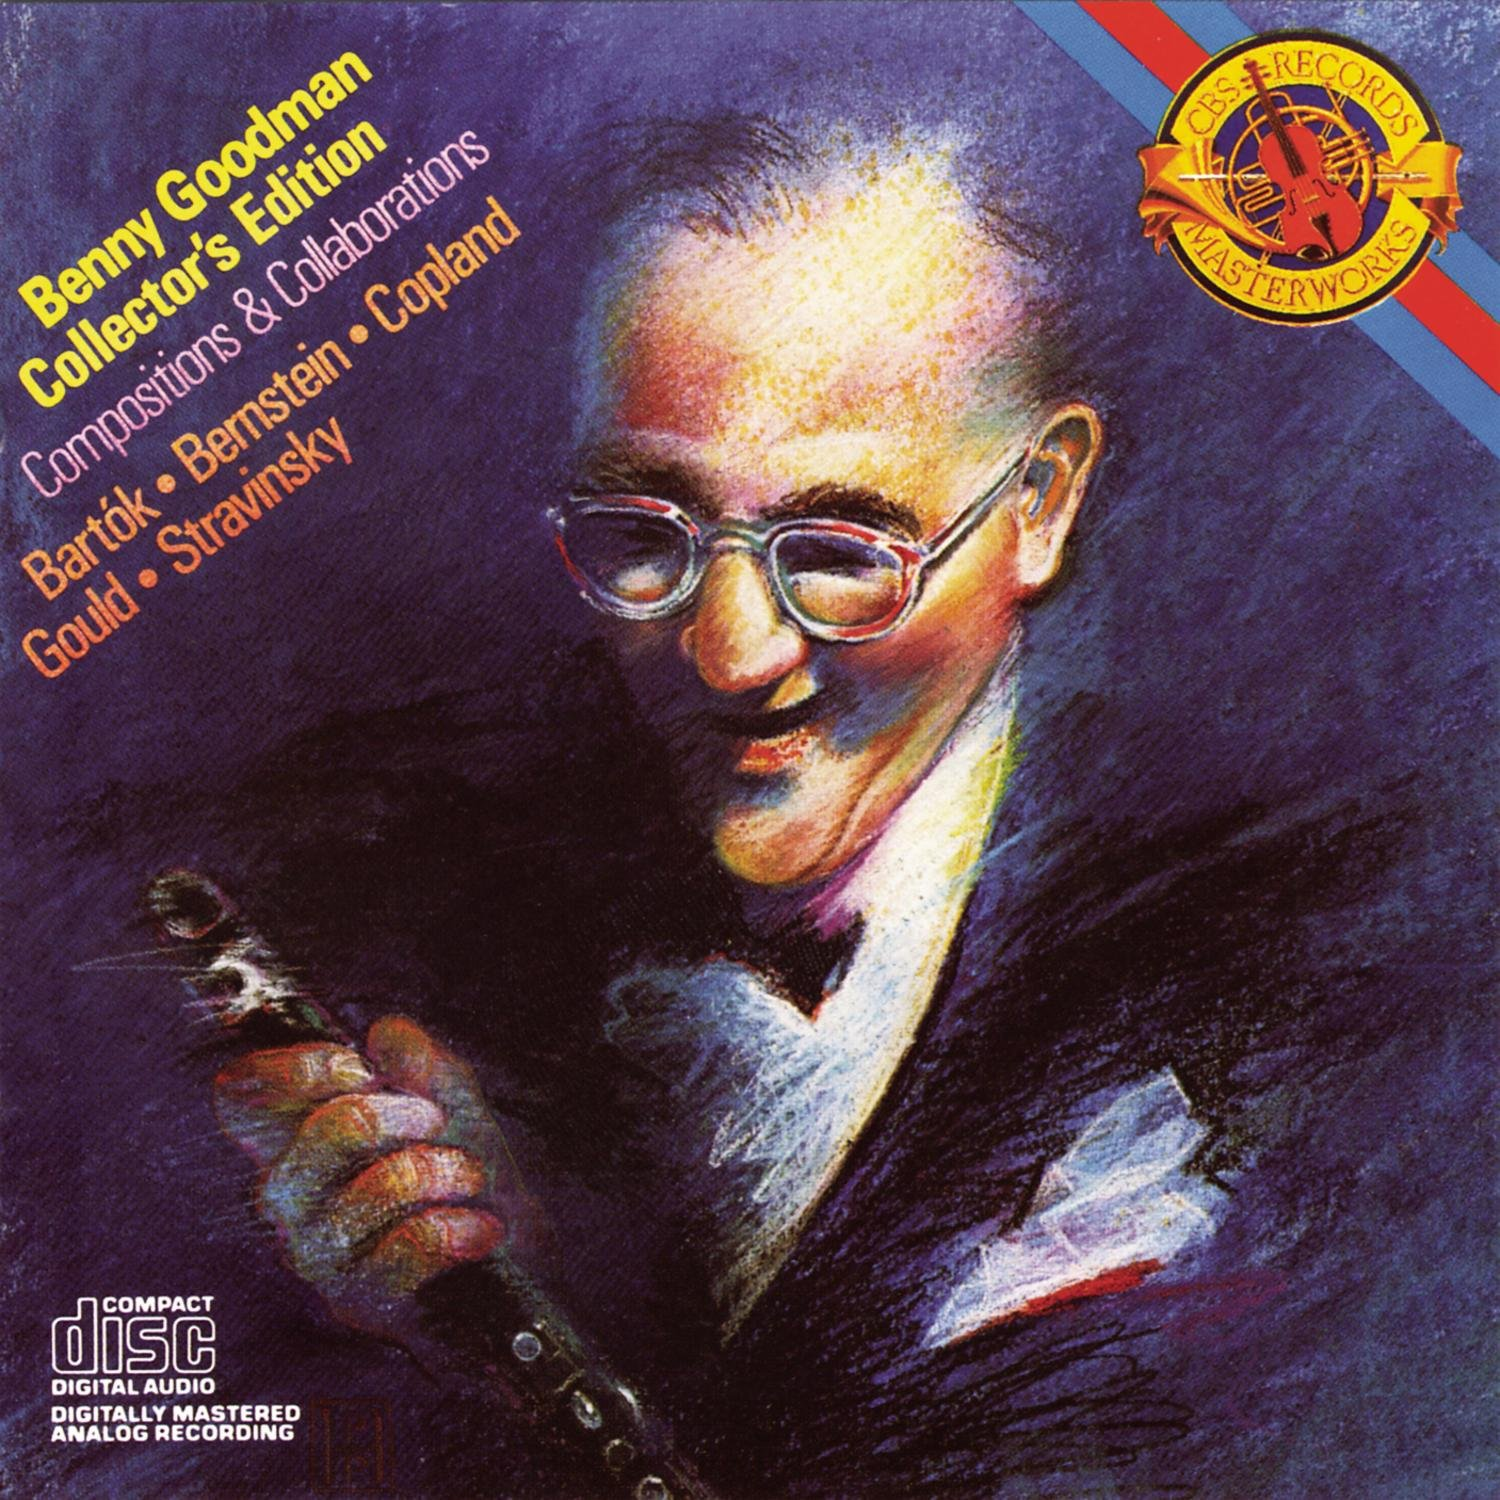 goodman collector box. bela bartok, columbia jazz combo, symphony orchestra, benny goodman, joseph szigeti - goodman collector\u0027s edition amazon.com music collector box